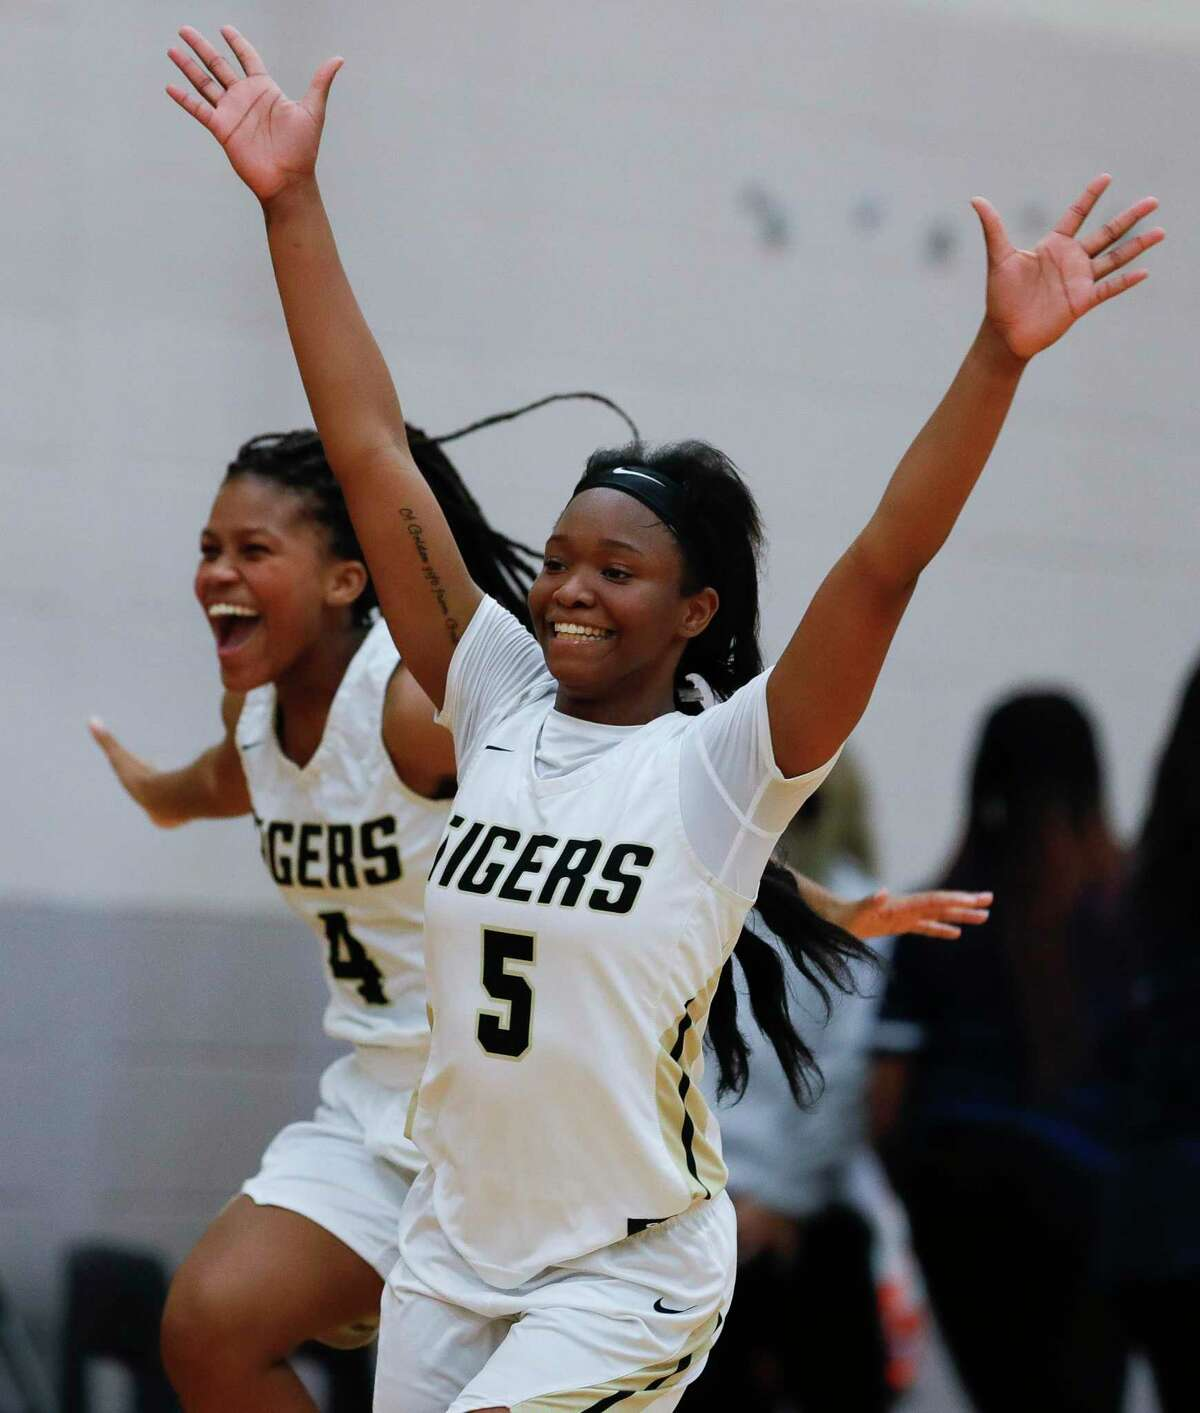 Conroe guards JaKayla Bradford (5) and Deanna Sneed (4) react after defeating Klein Collins 36-29 to stay atop District 15-6A at Conroe High School, Friday, Jan. 3, 2020, in Conroe.